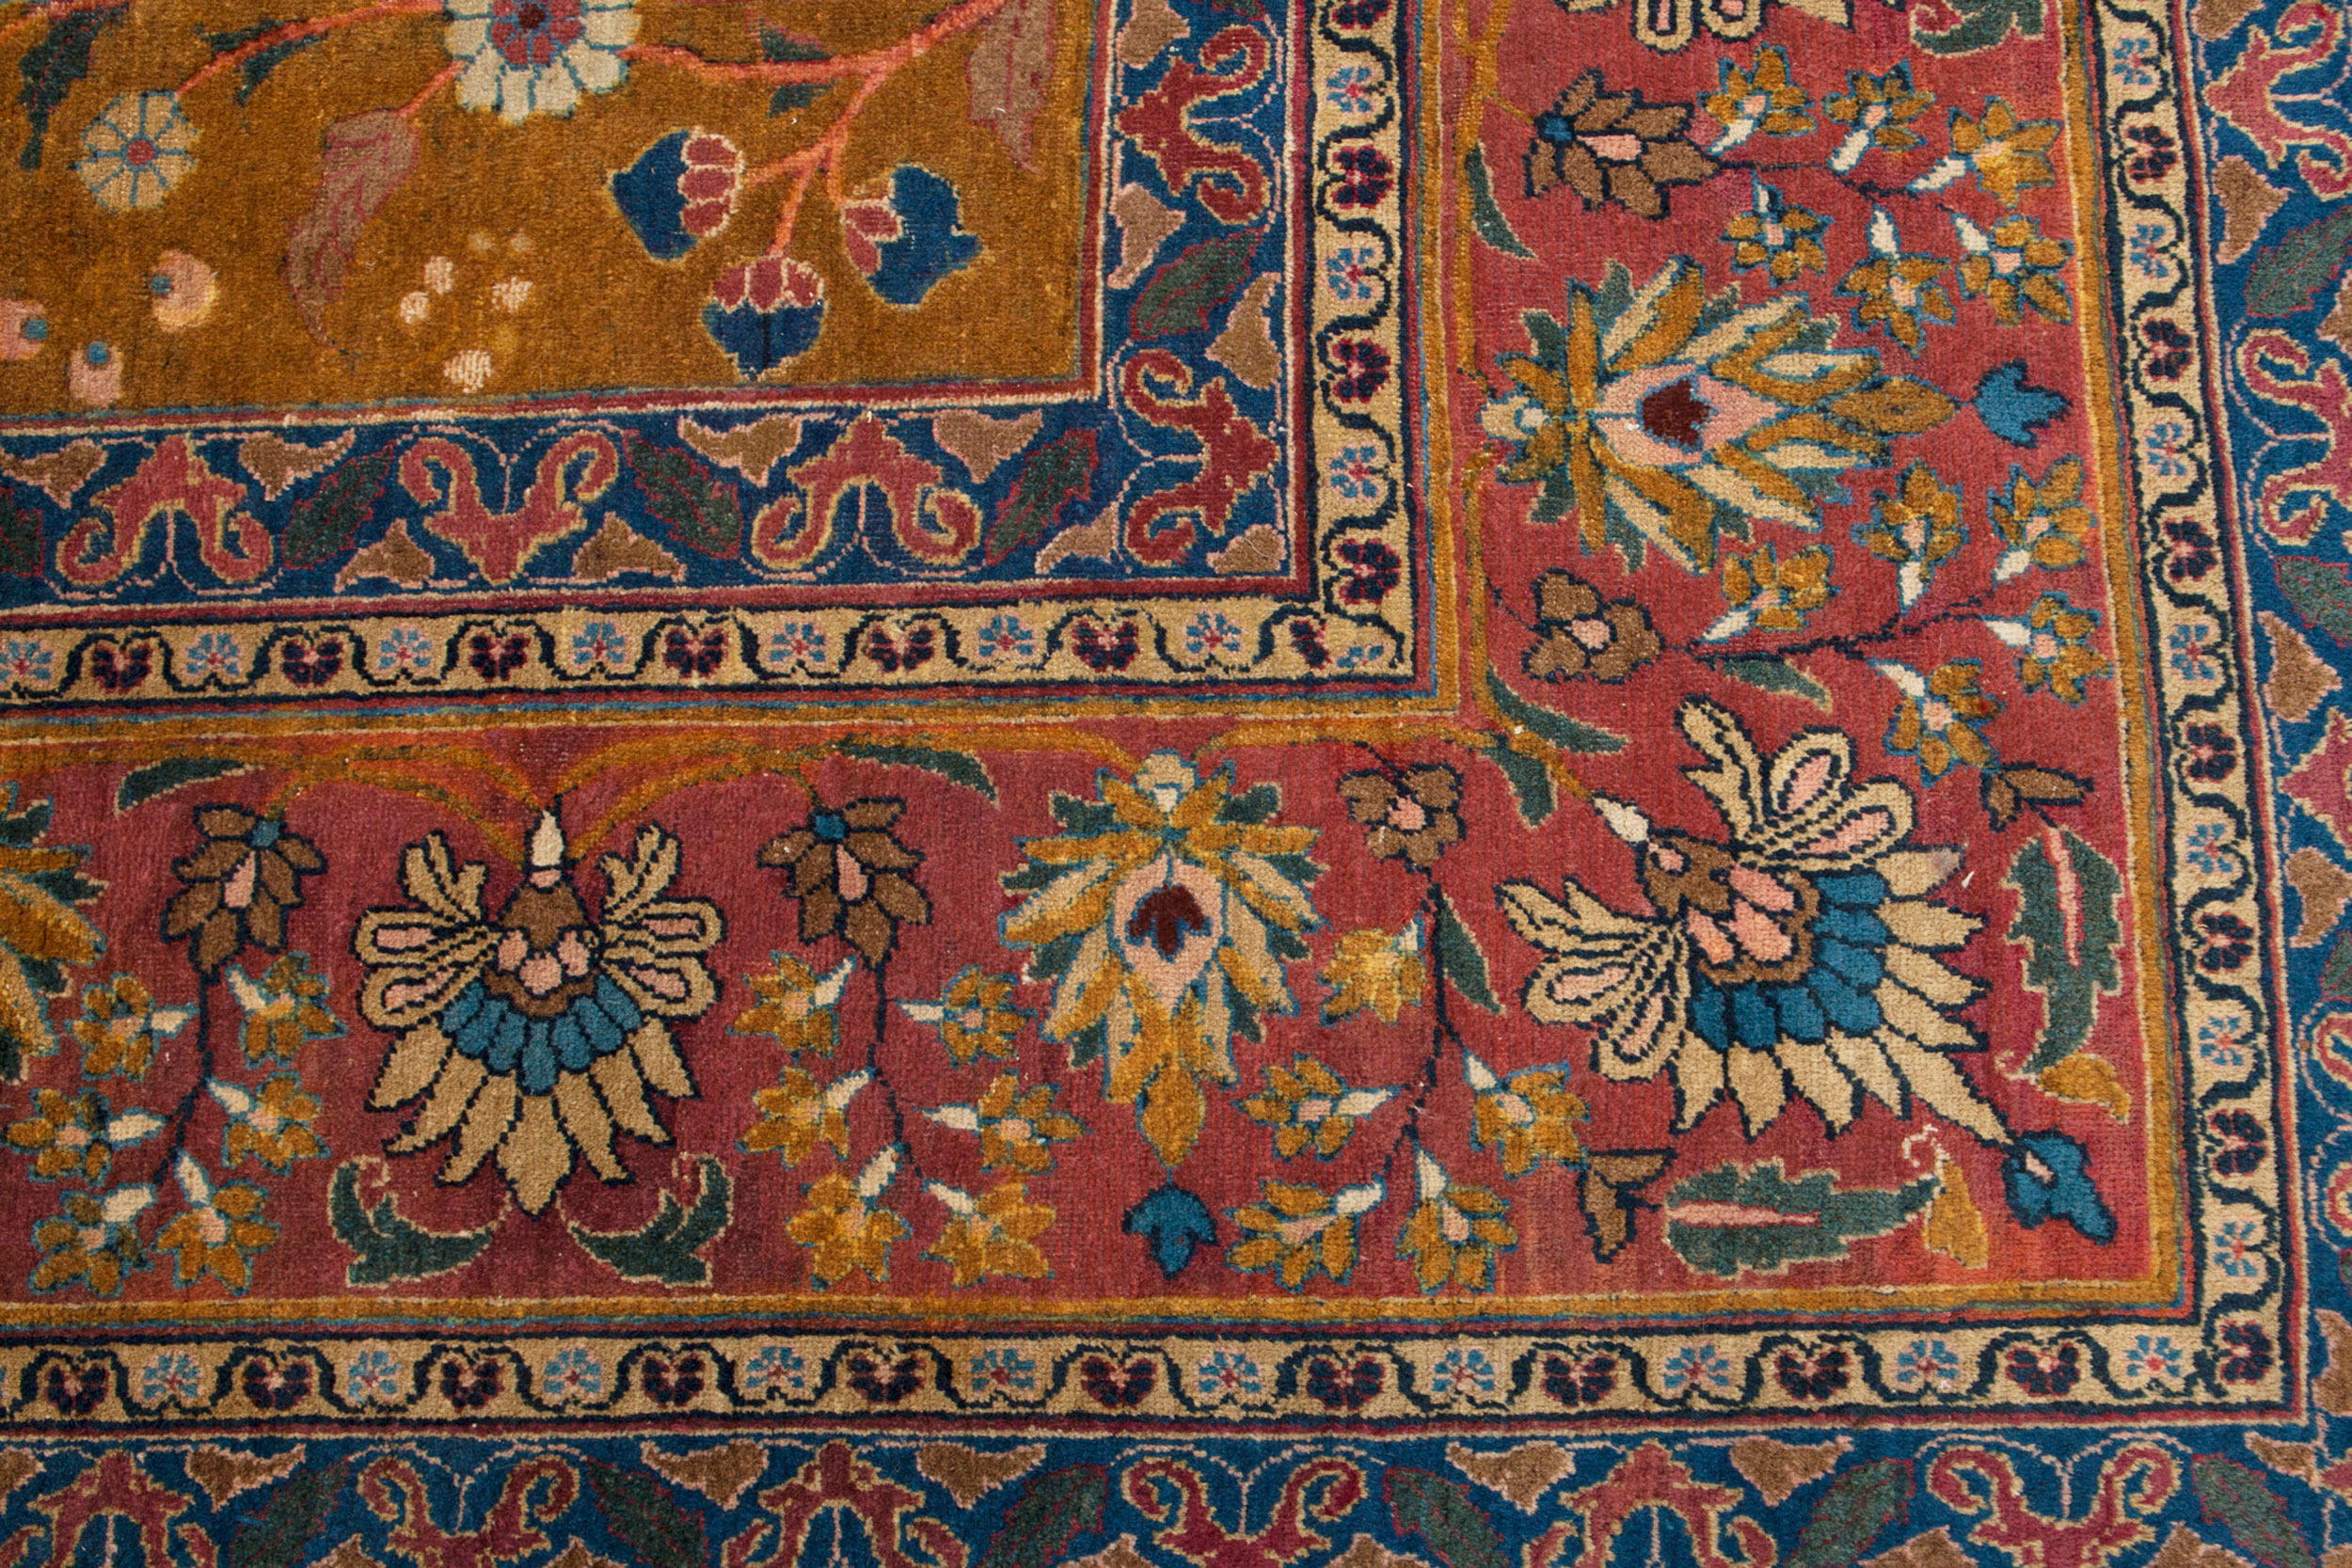 Antique Semnan Carpet 390x292cm